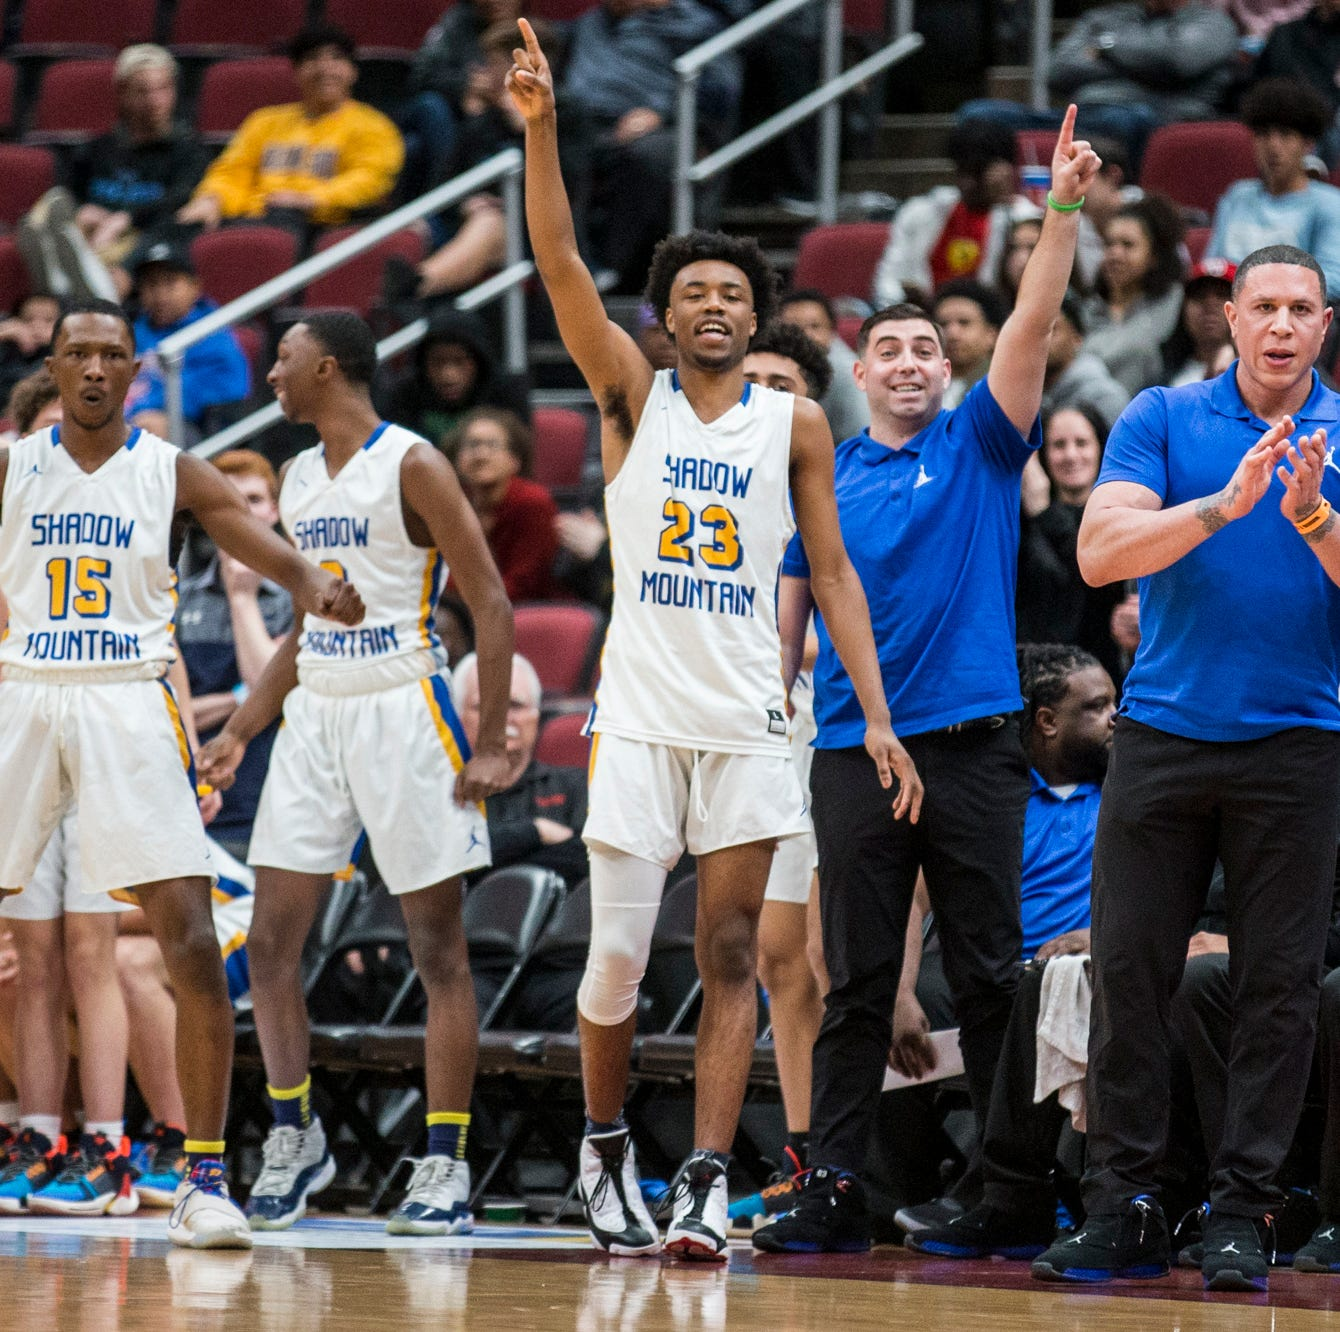 Mike Bibby's Shadow Mountain hoops dynasty adds another championship with rout of Deer Valley